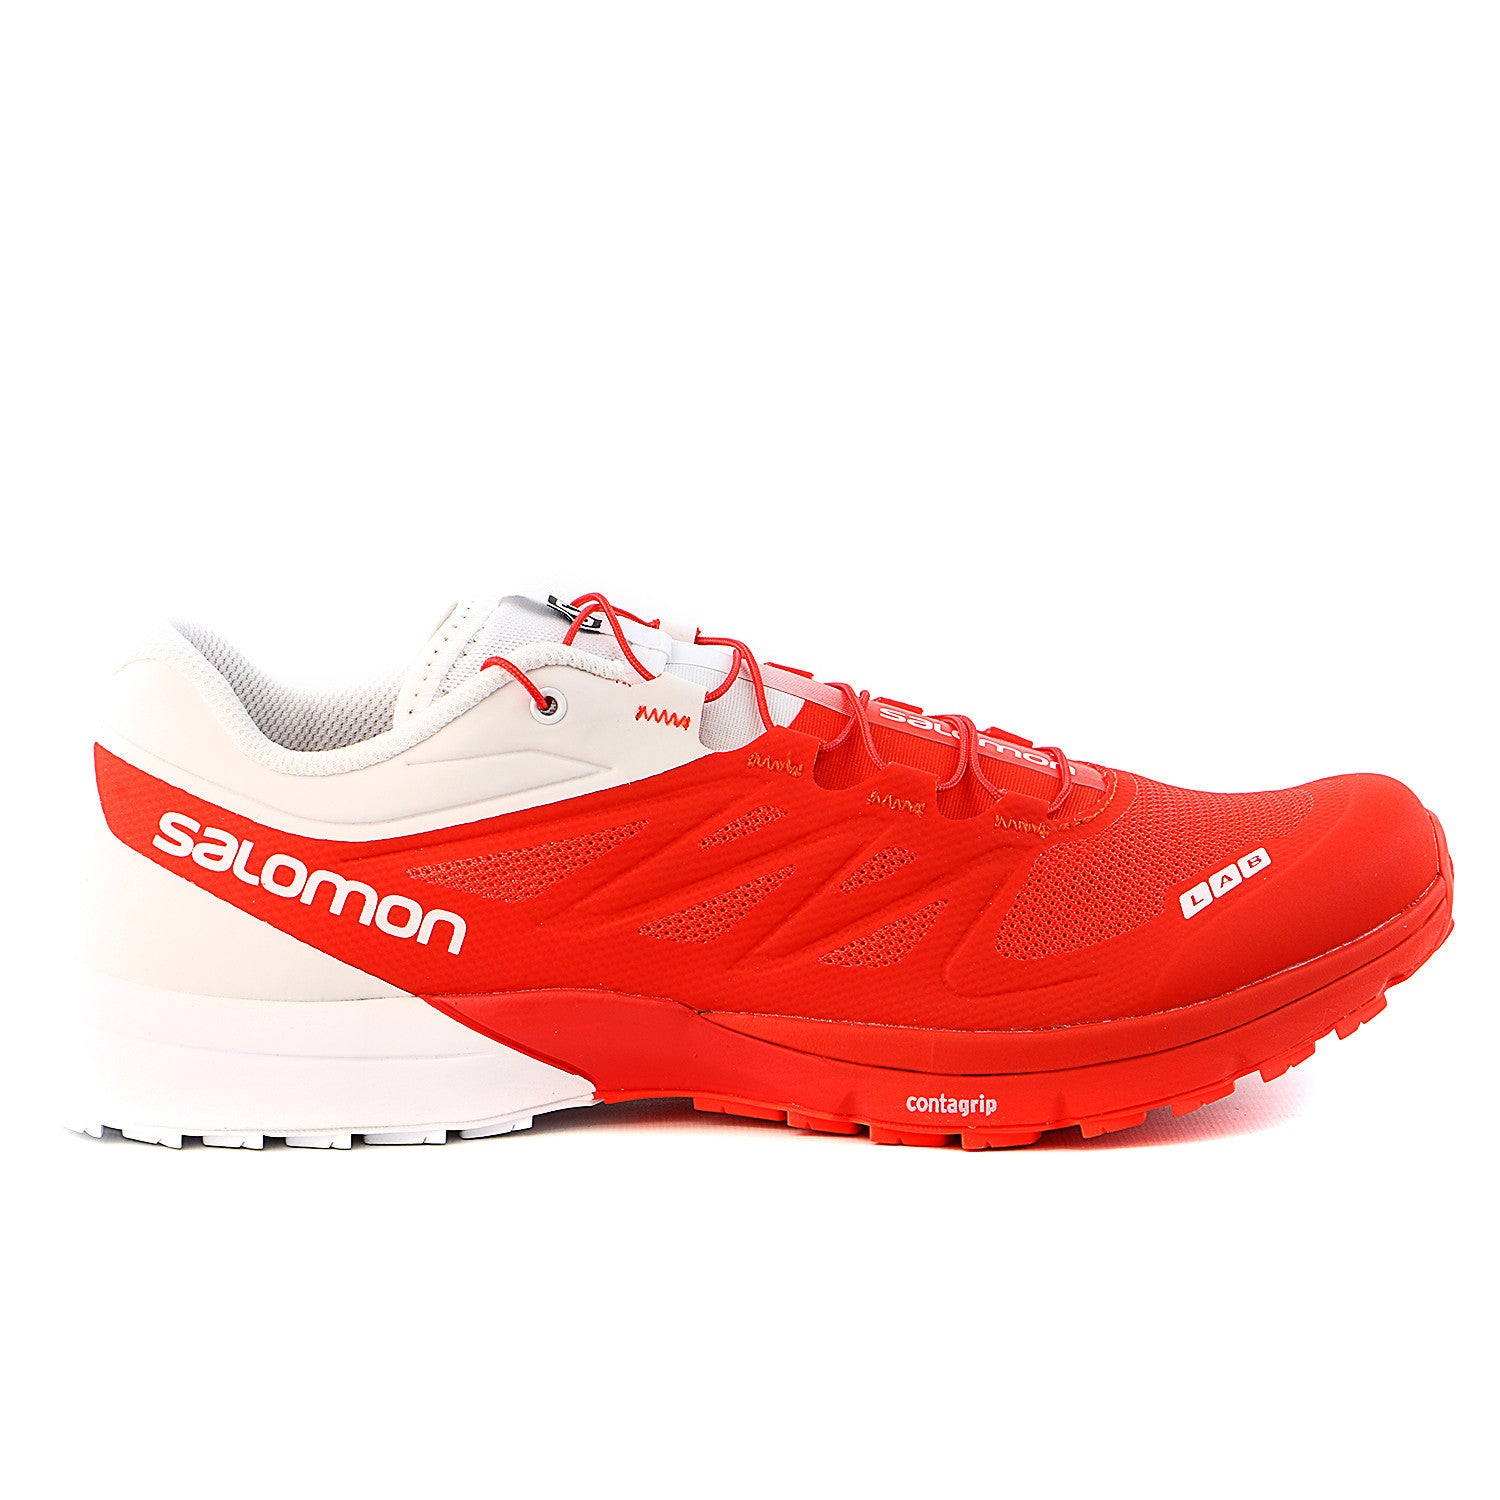 8030e707a061 Salomon S-LAB Sense 4 Ultra Trail Running Shoes - Racing Red White - M -  Shoplifestyle